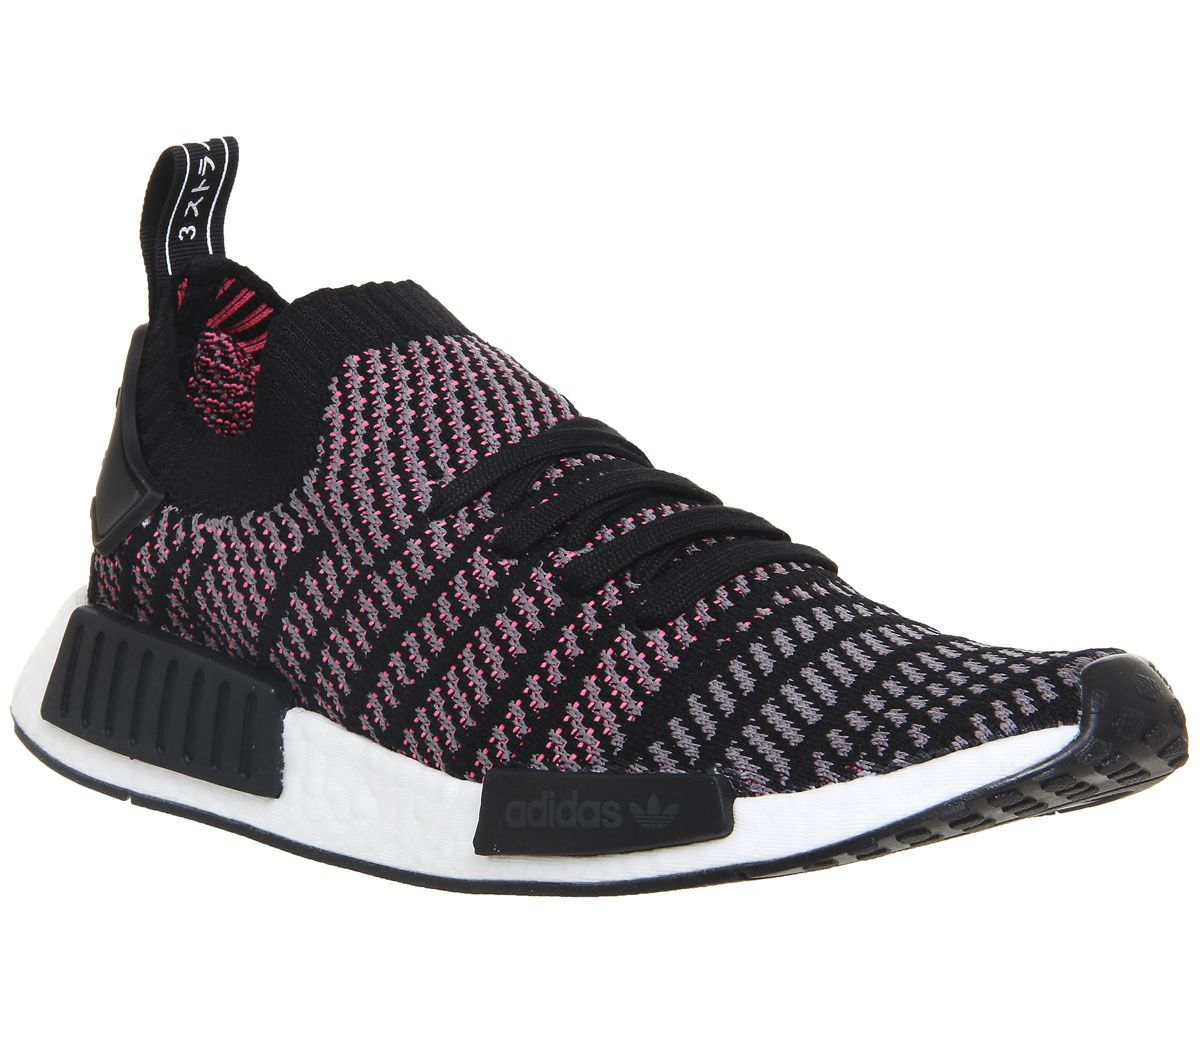 5f726aa21 adidas Nmd R1 Prime Knit Clear Black Grey Solar Pink - Unisex Sports